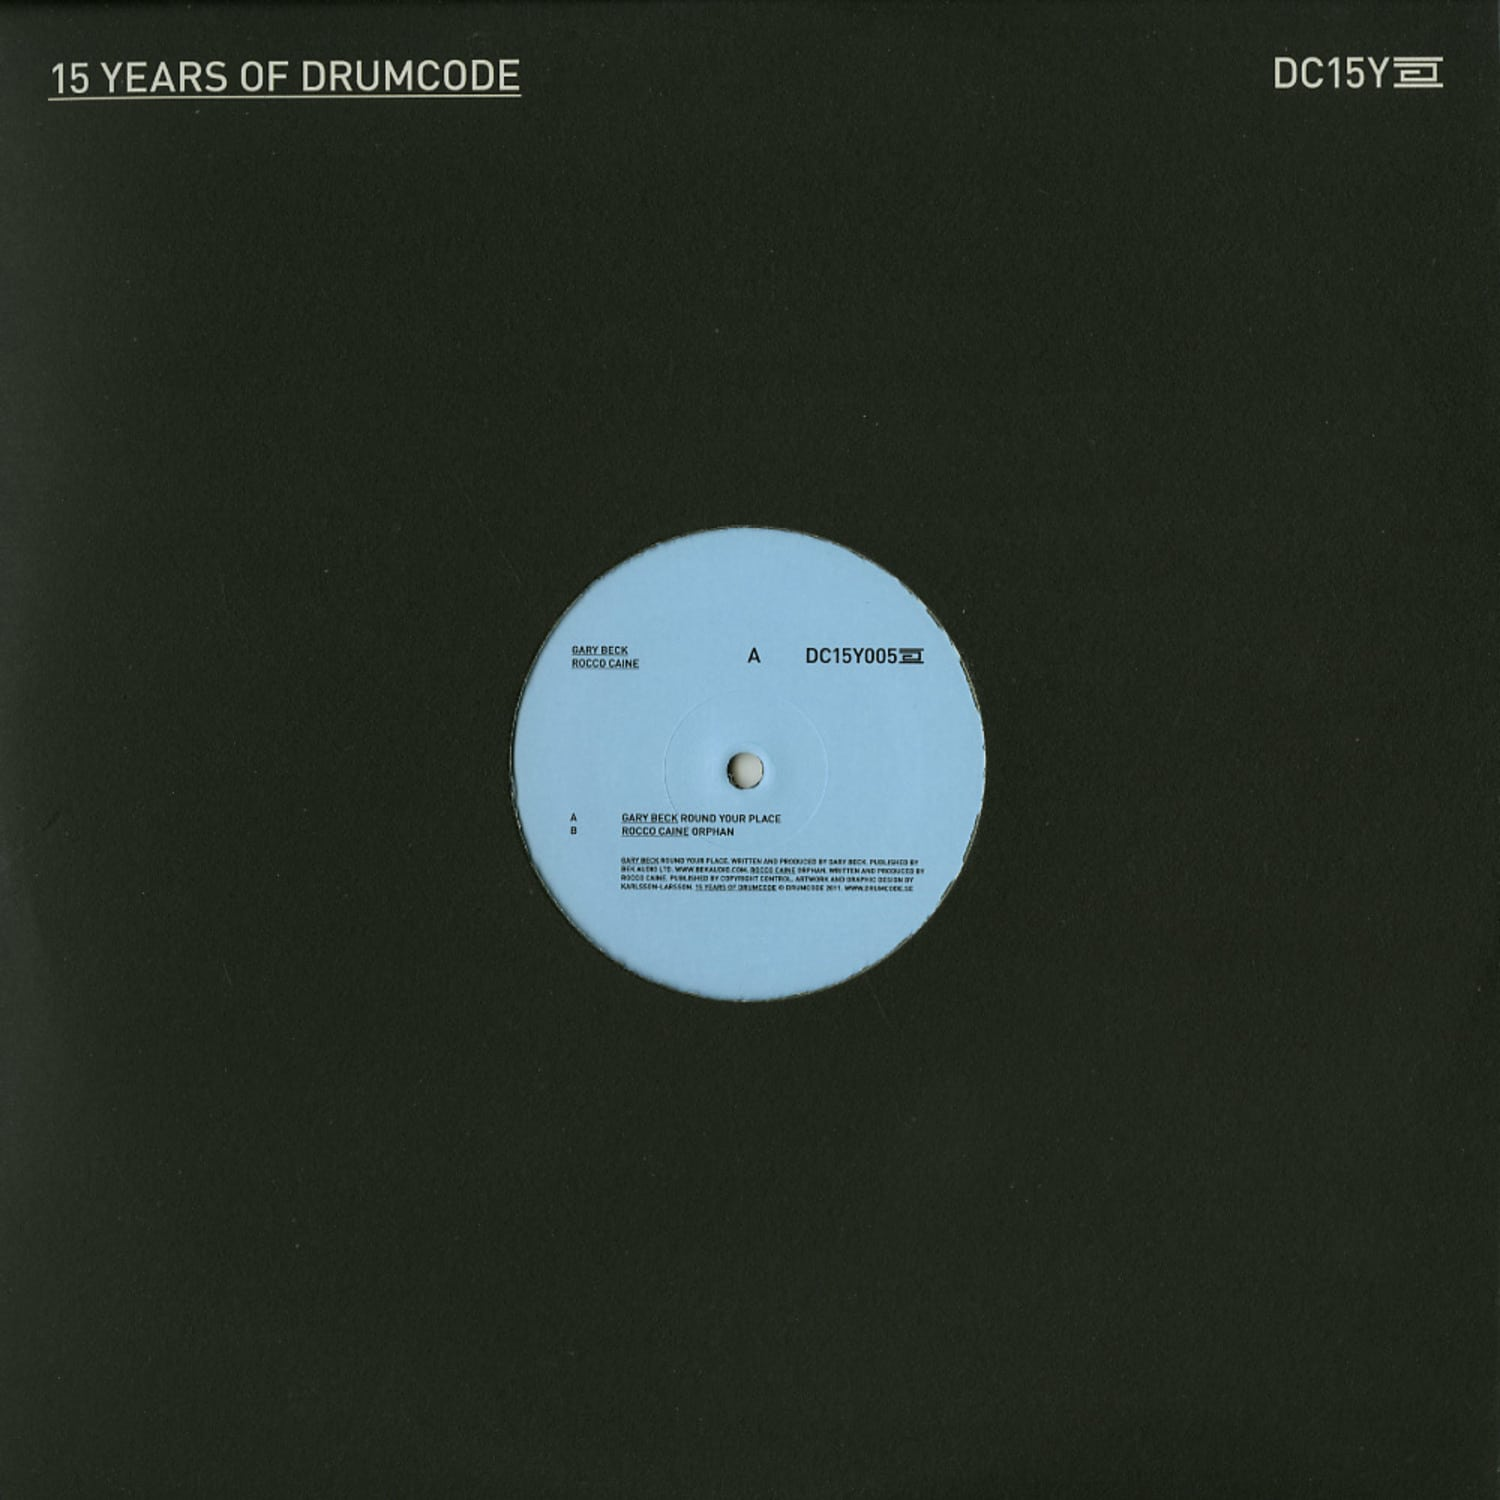 Gary Beck / Rocco Caine - 15 YEARS OF DRUMCODE PT. 5